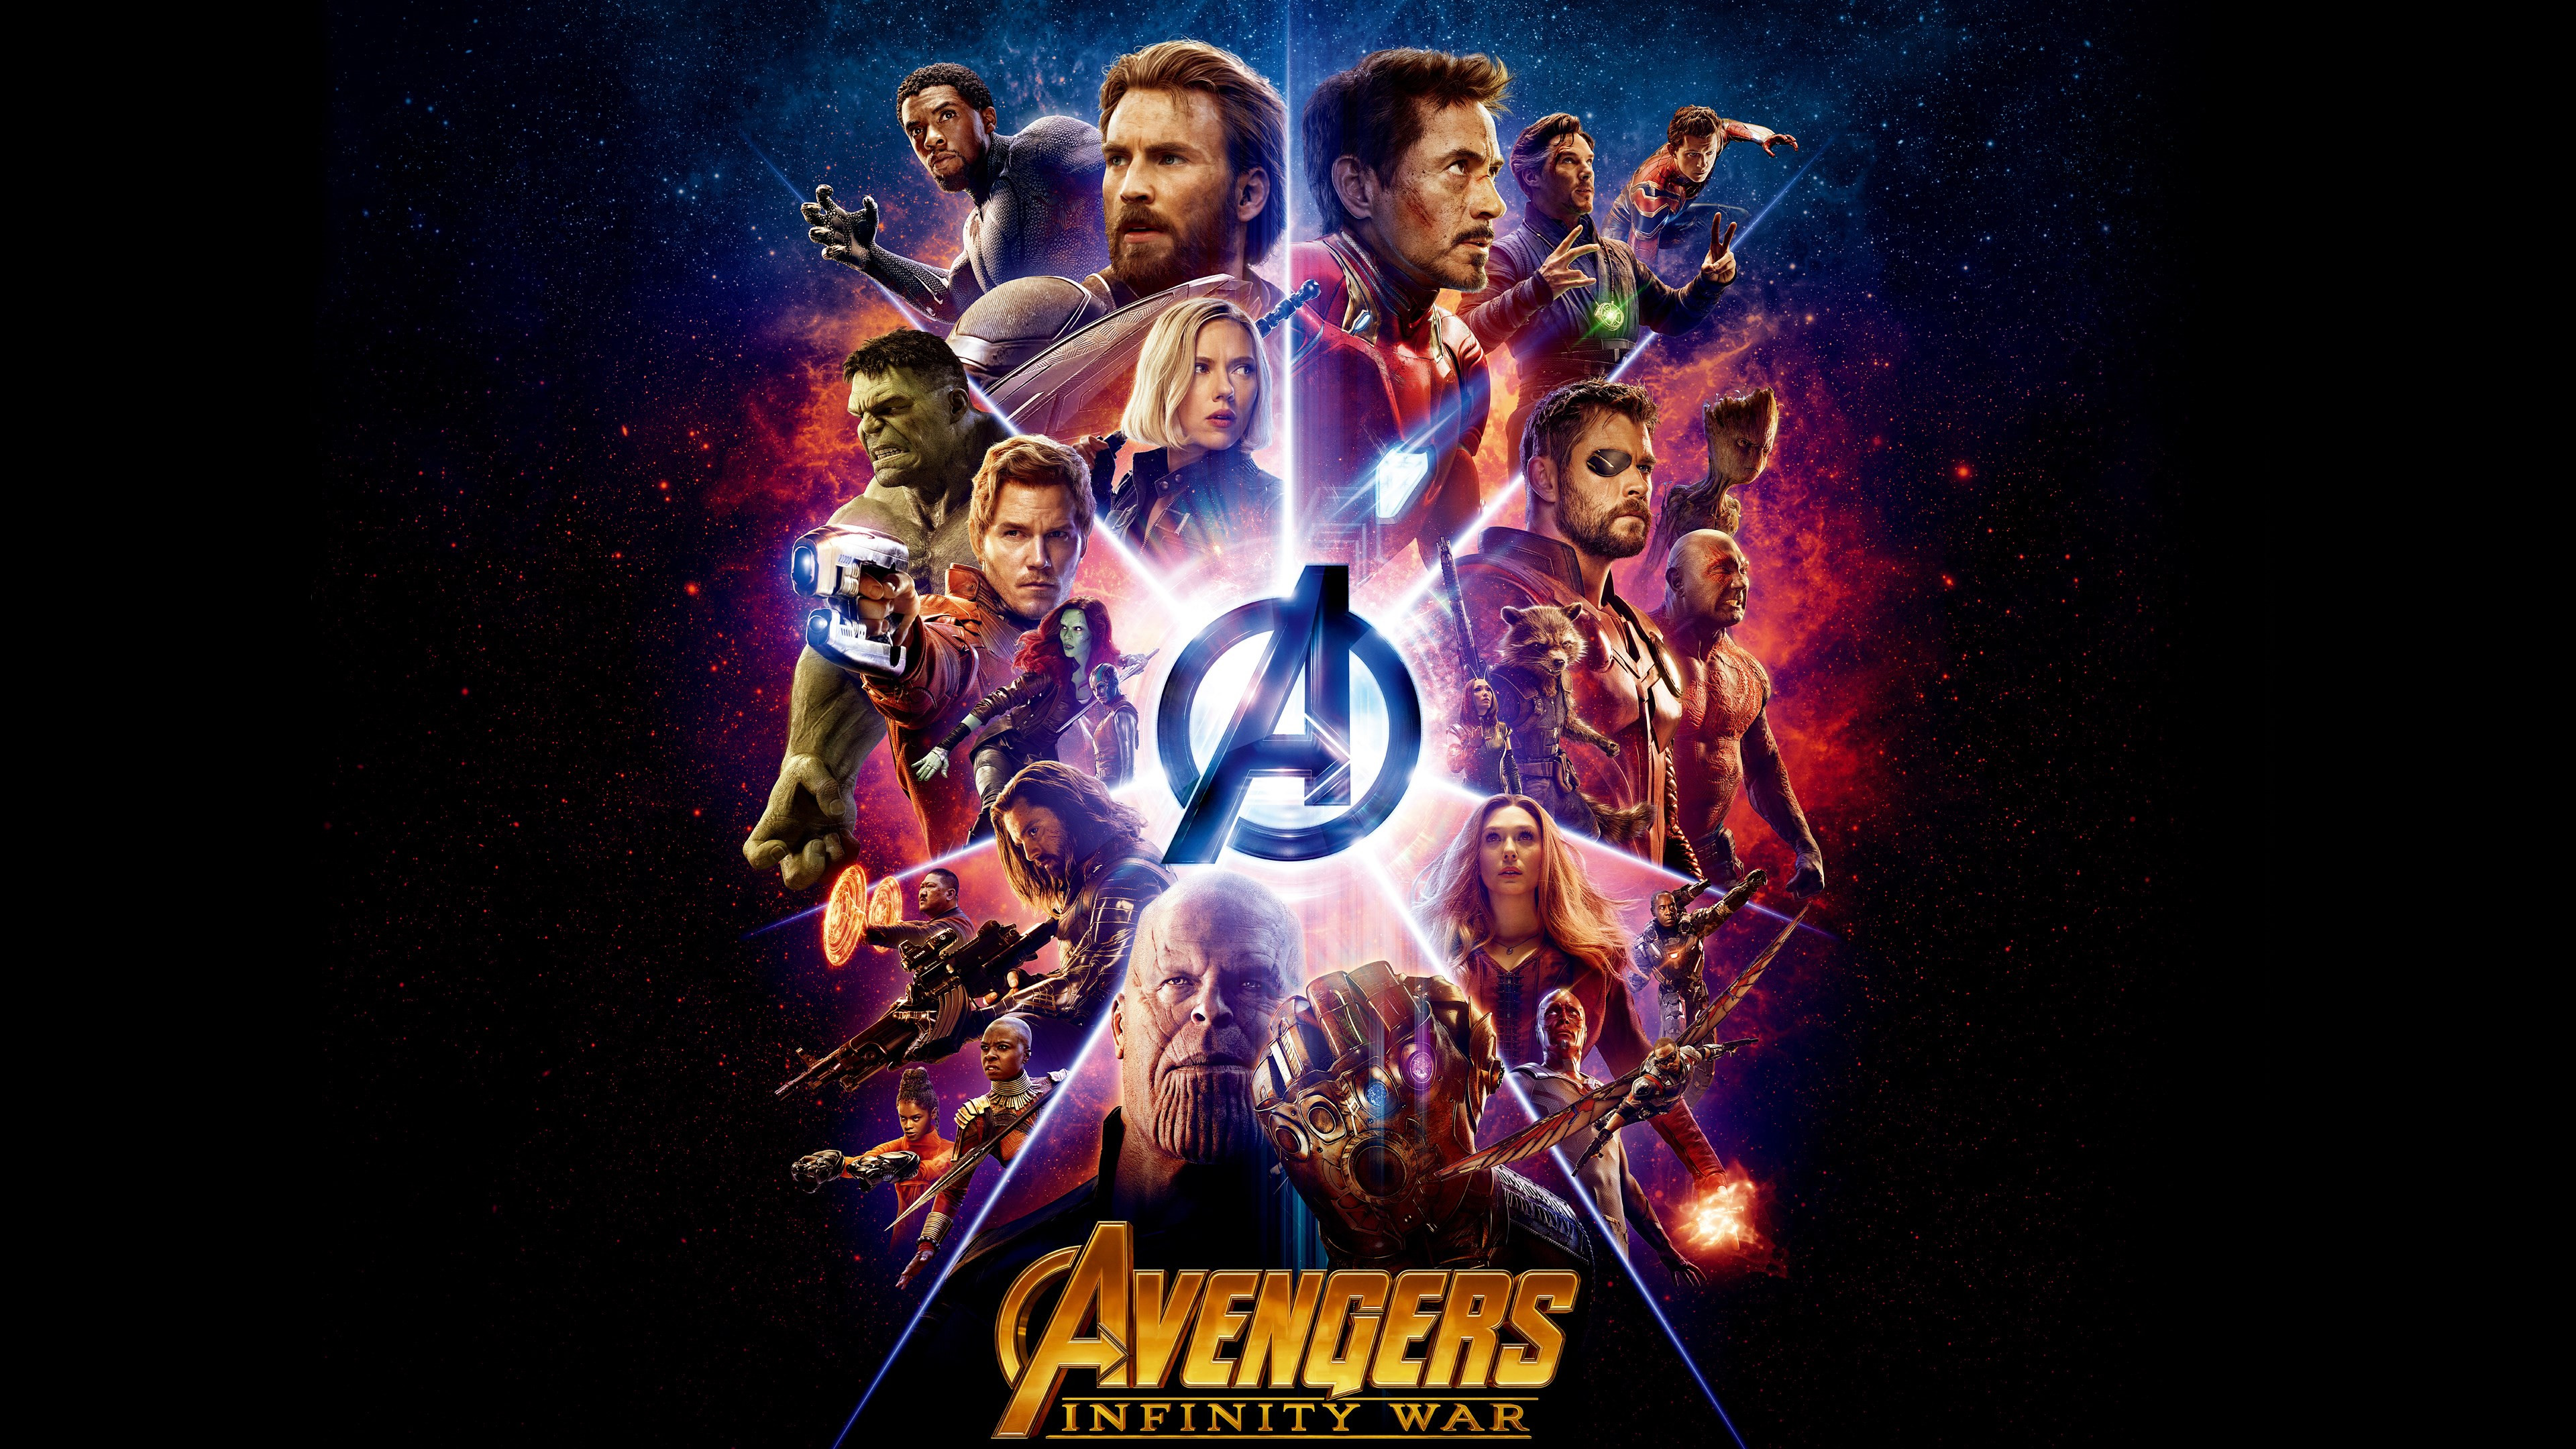 Stunning 4k Film Wallpaper All Heroes Of Avengers Infinity War